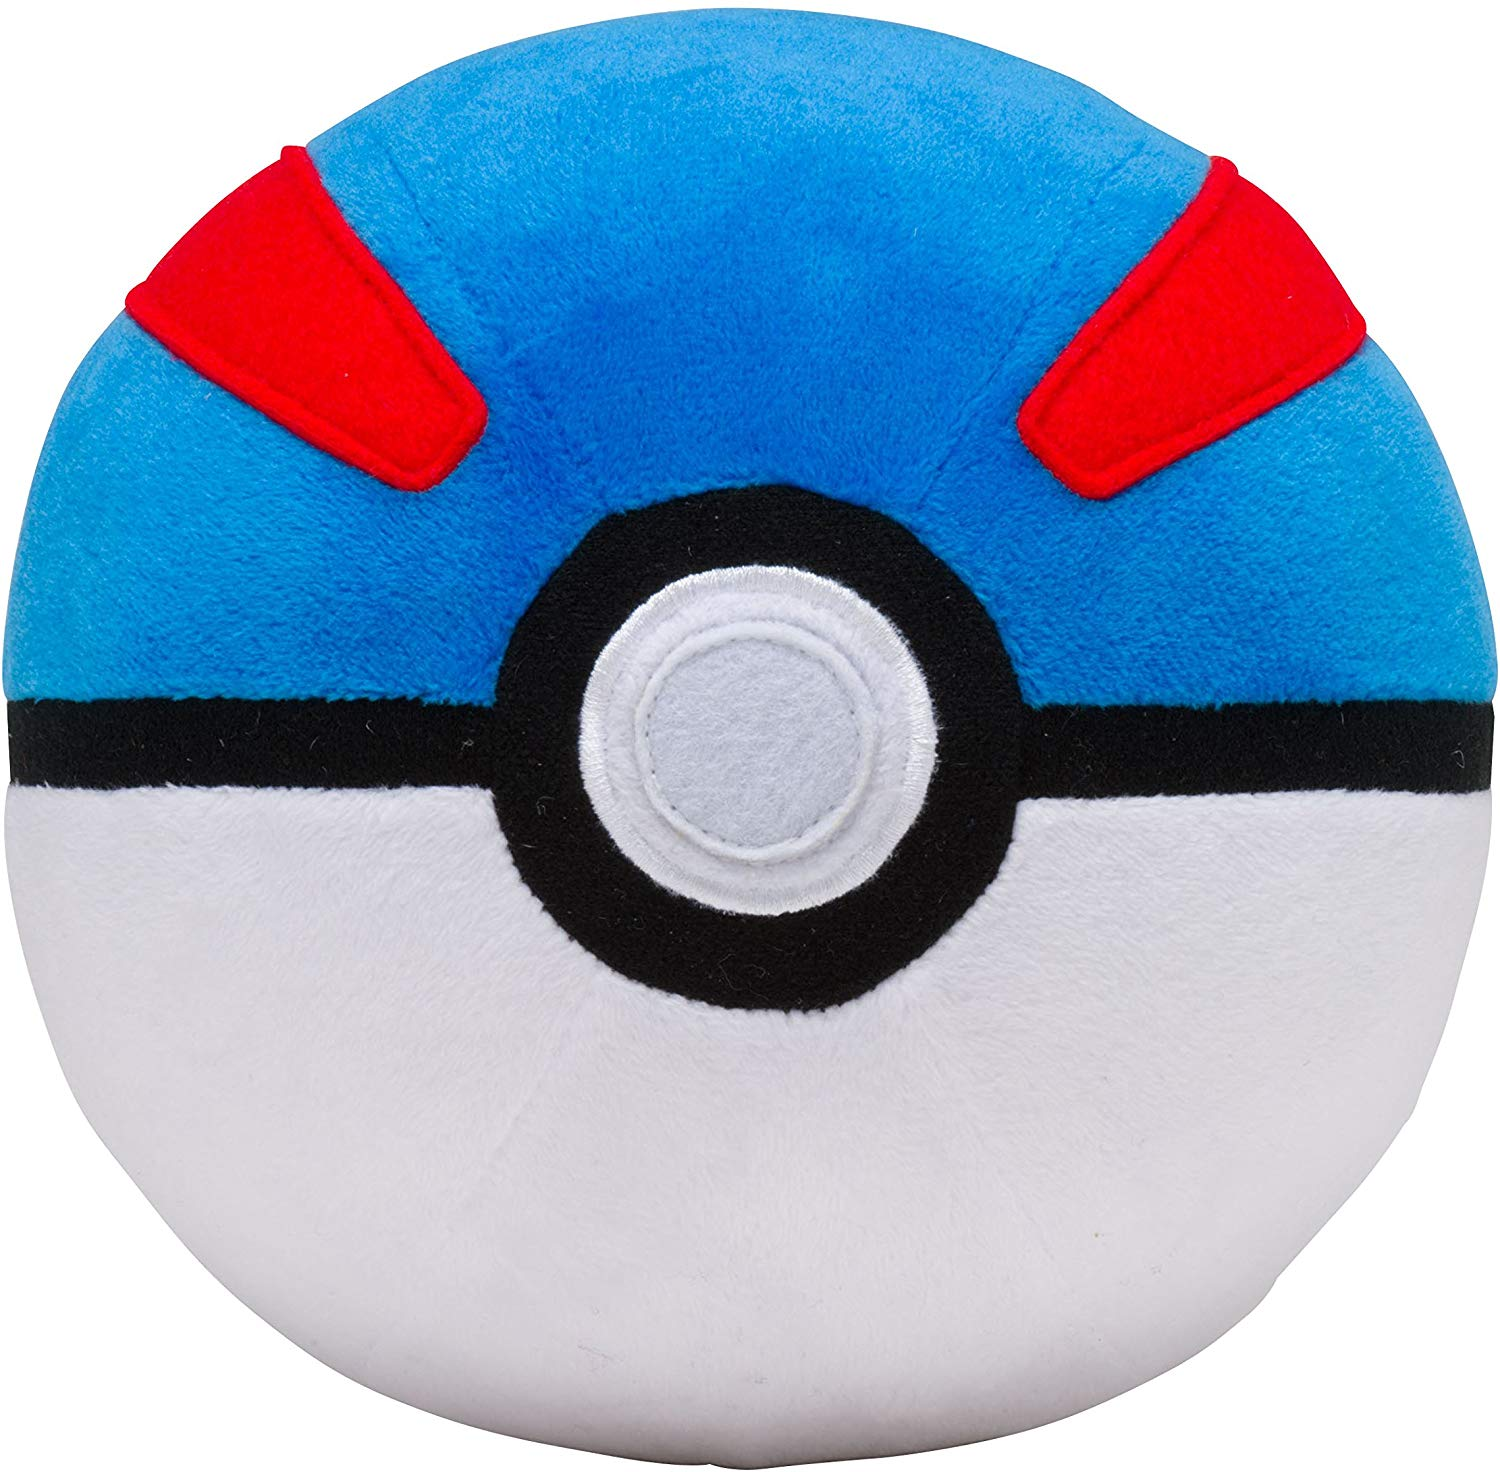 Poke Plush Stuffed Great Ball (Super ball)